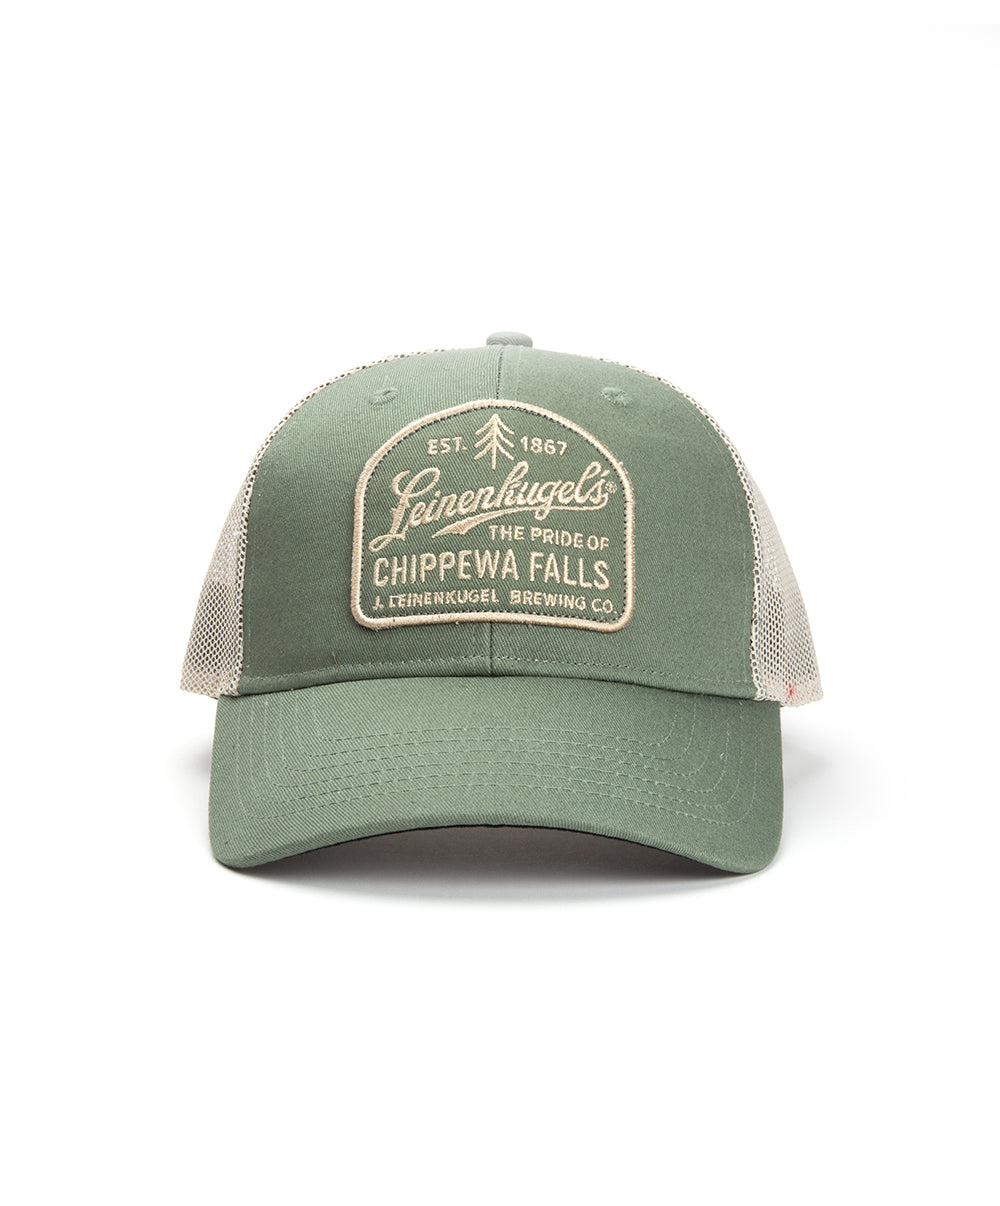 NASH CHIPPEWA FALLS PRIDE HAT